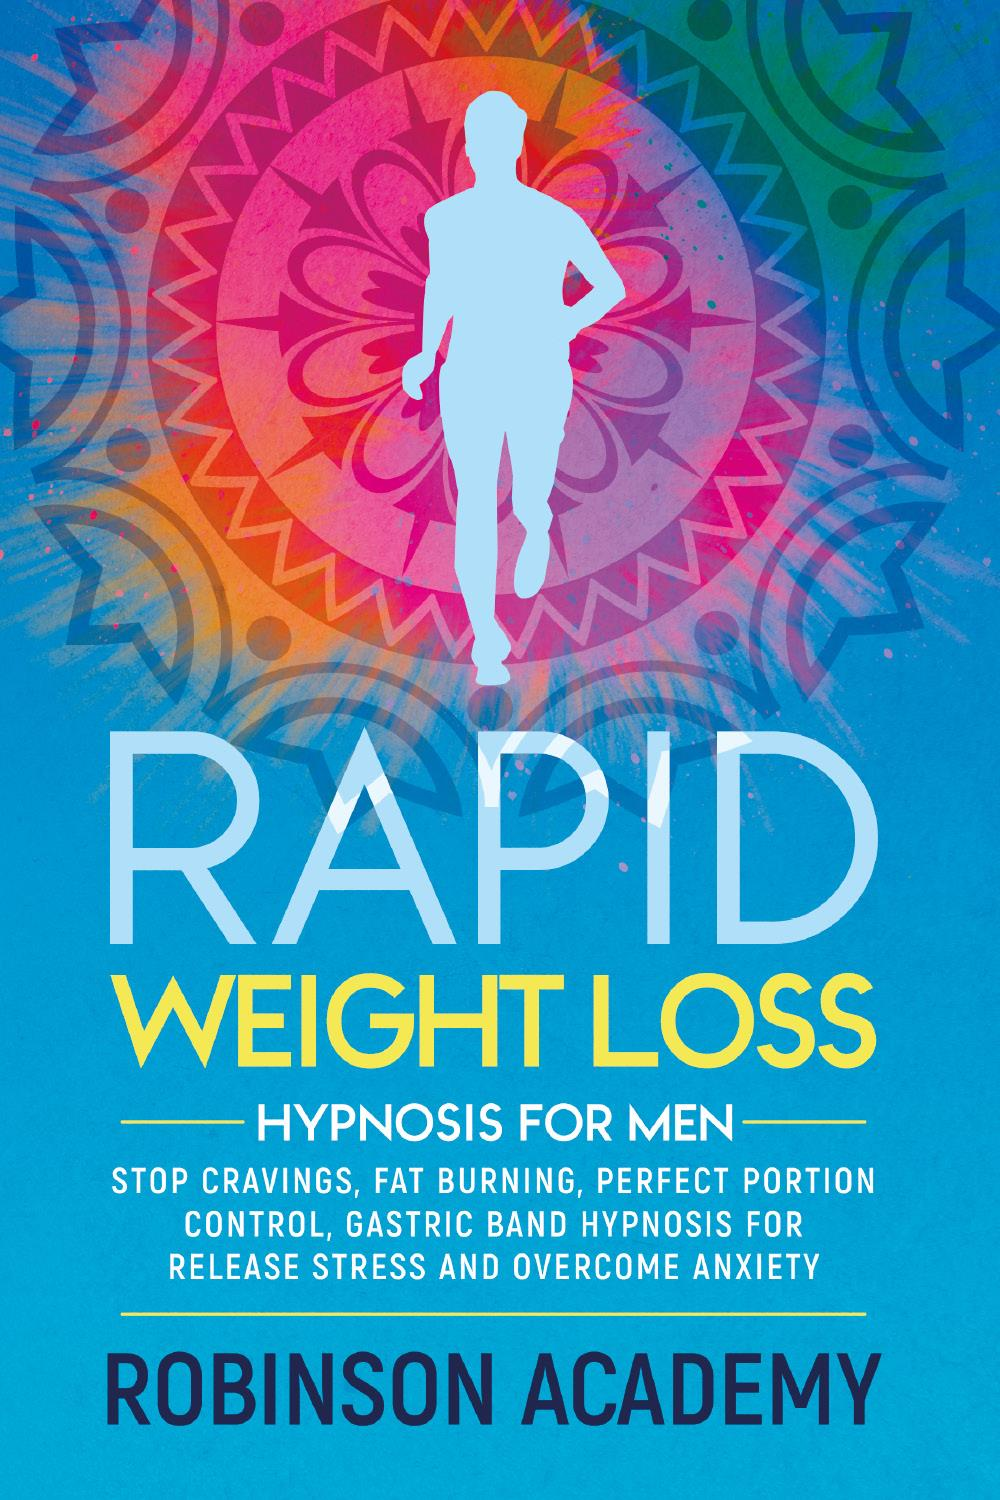 Rapid weight loss hypnosis for men. Stop Cravings, Fat Burning, Perfect Portion Control, Gastric Band Hypnosis for Release Stress And Overcome Anxiety